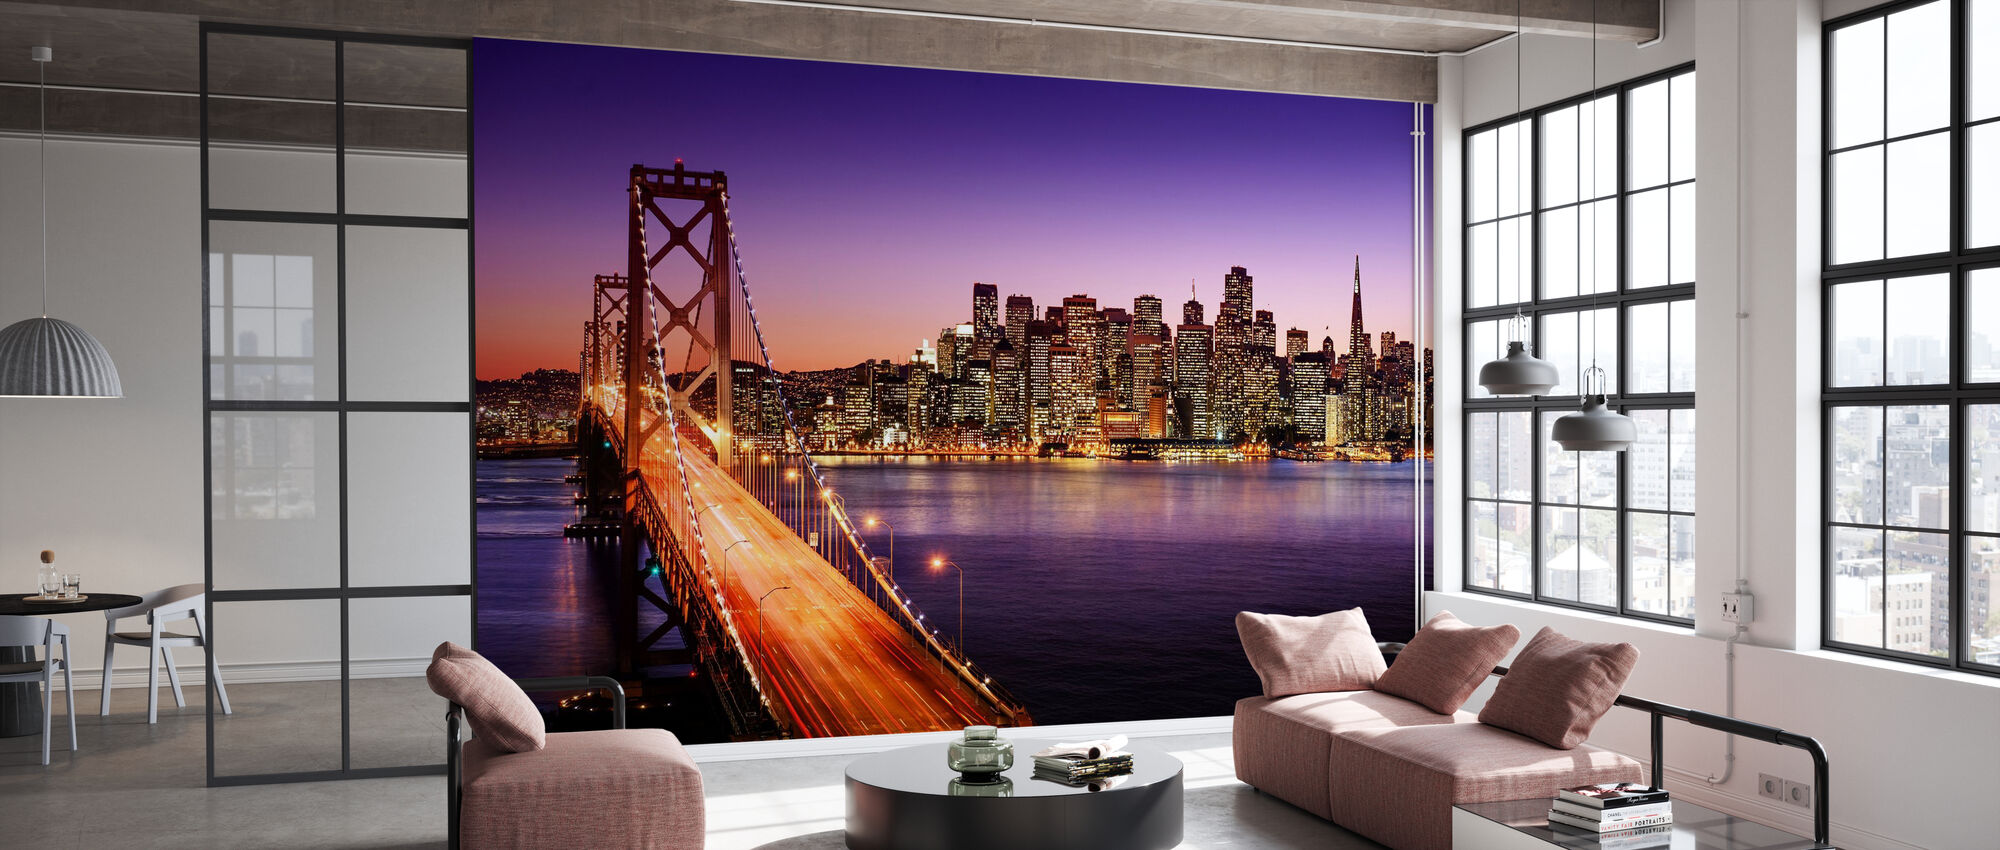 San Francisco Bay Bridge - Wallpaper - Office